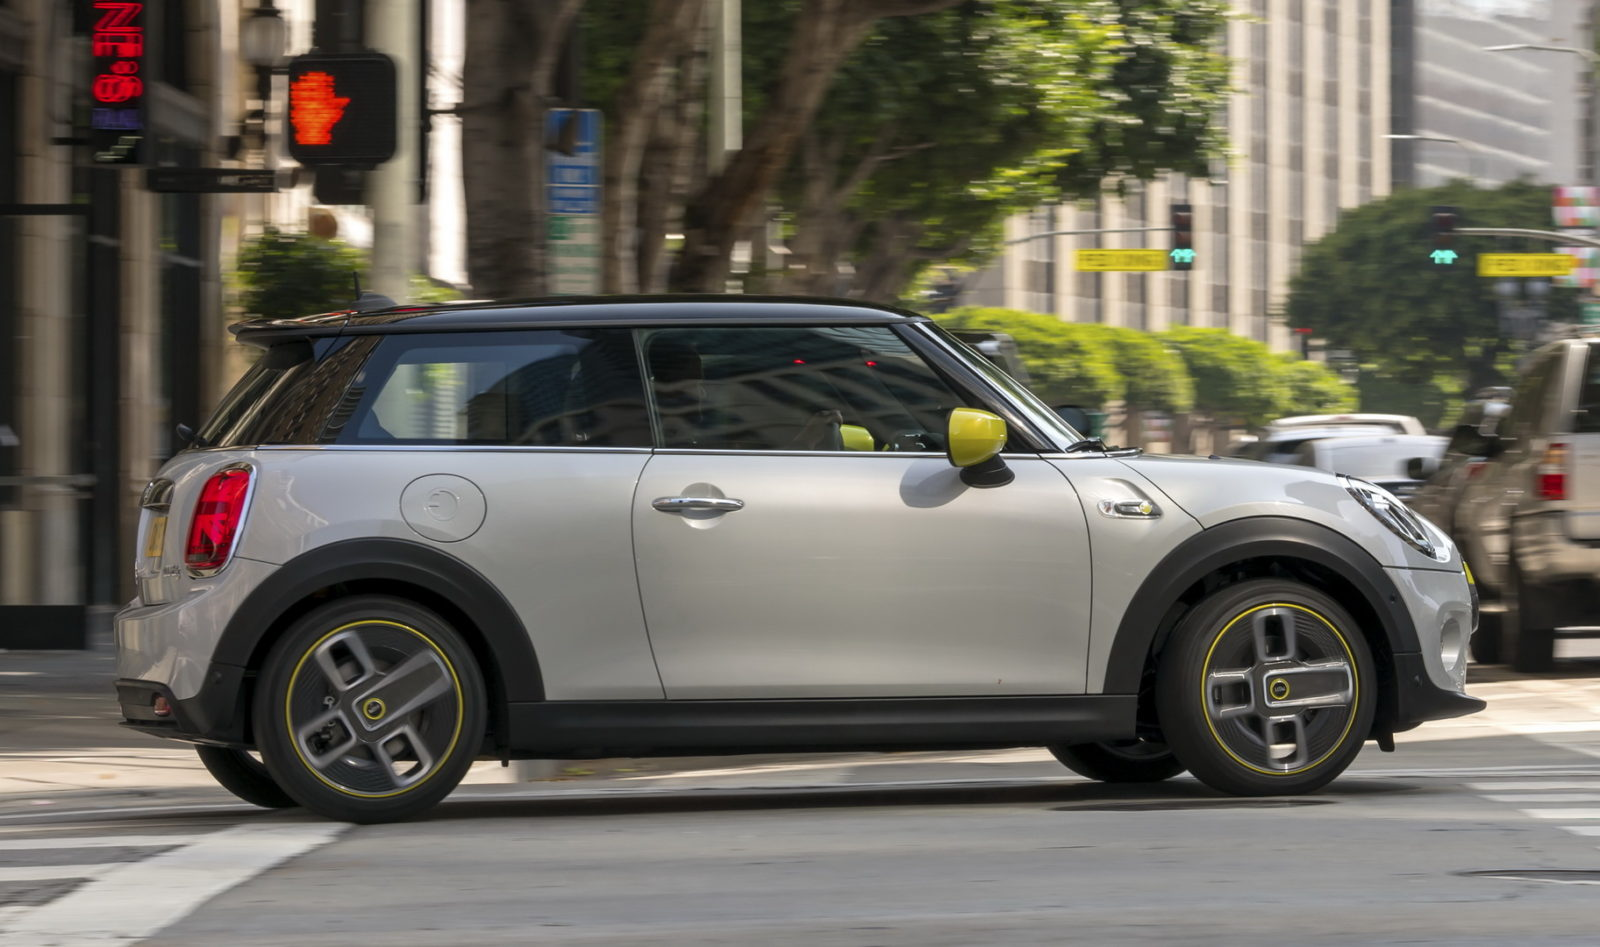 most-americans-would-now-consider-an-electric-car-as-their-primary-vehicle,-says-mini